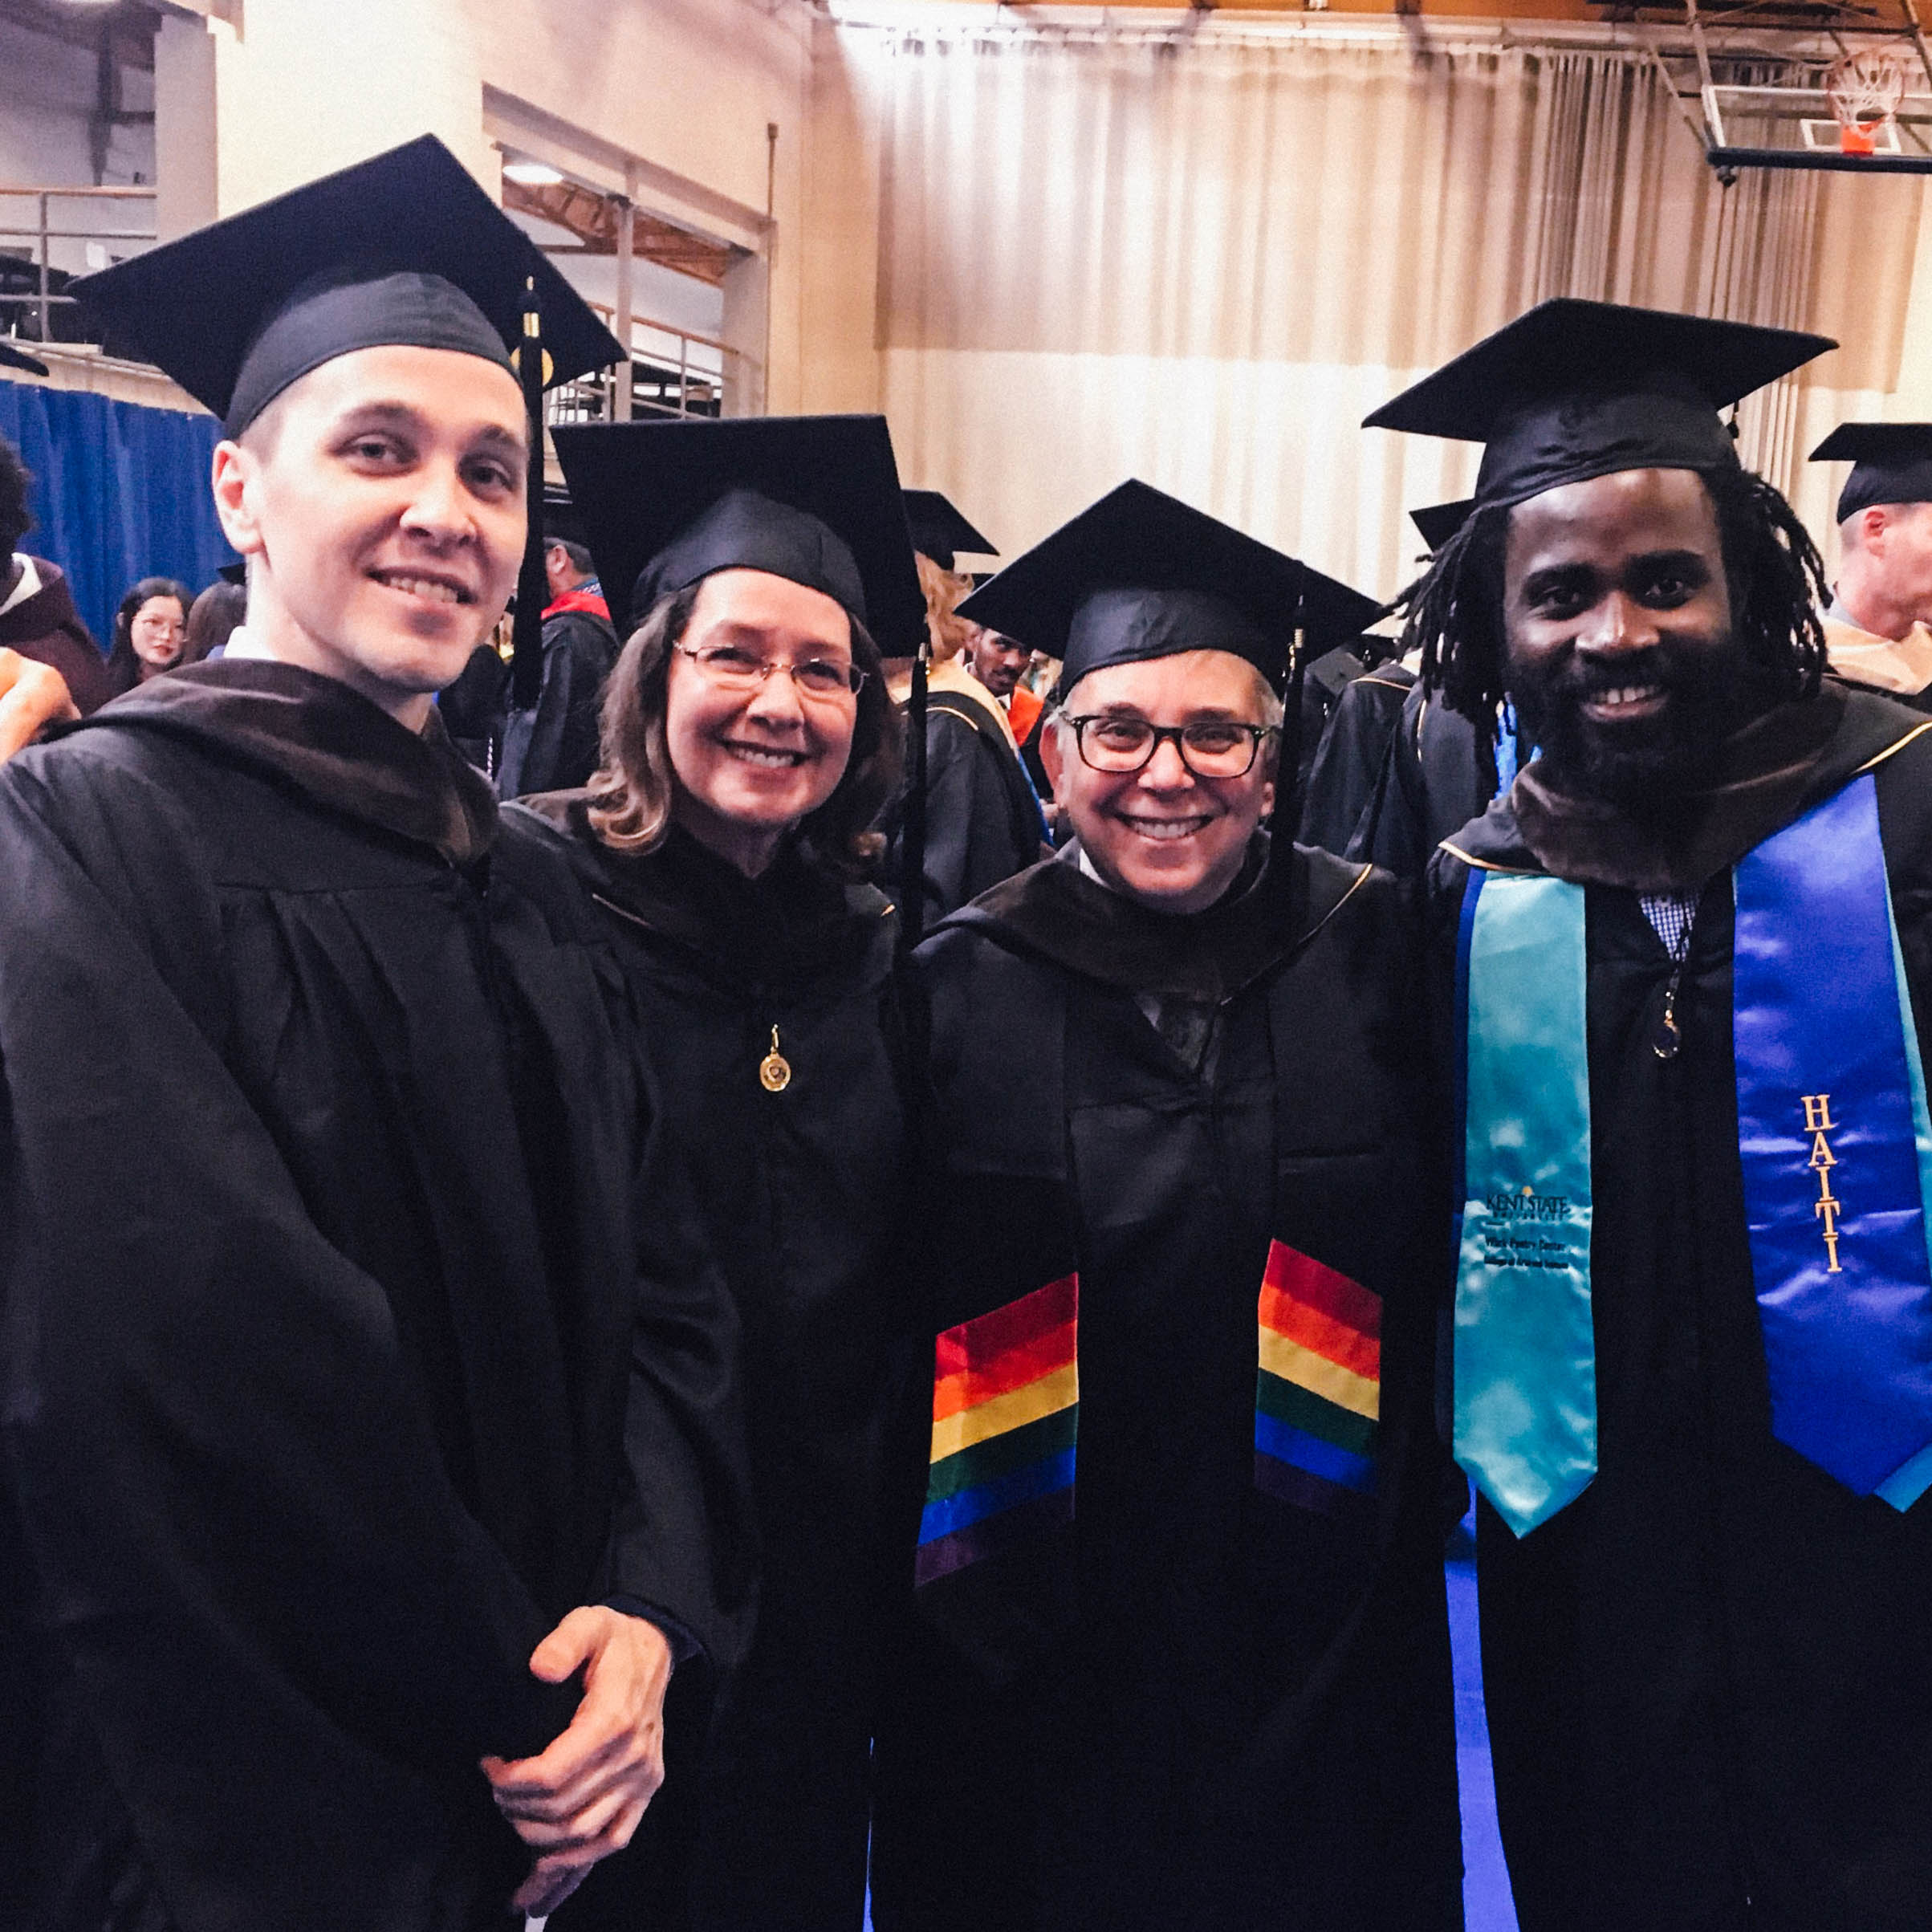 Students and professors pose together at graduation